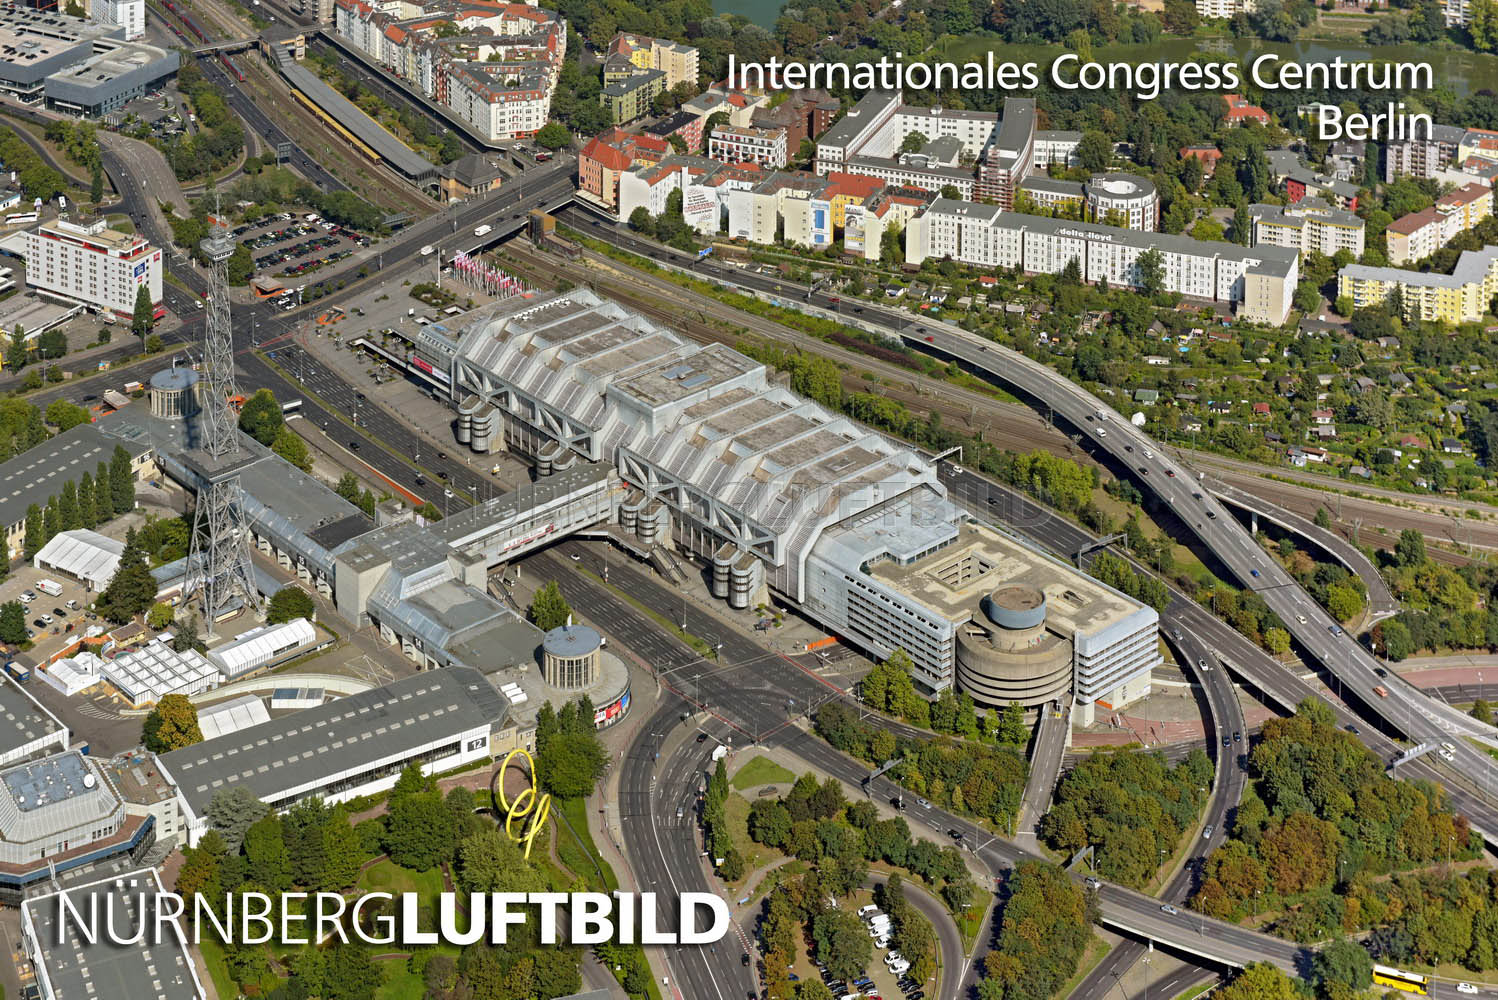 Internationales Congress Centrum, Berlin, Luftbild